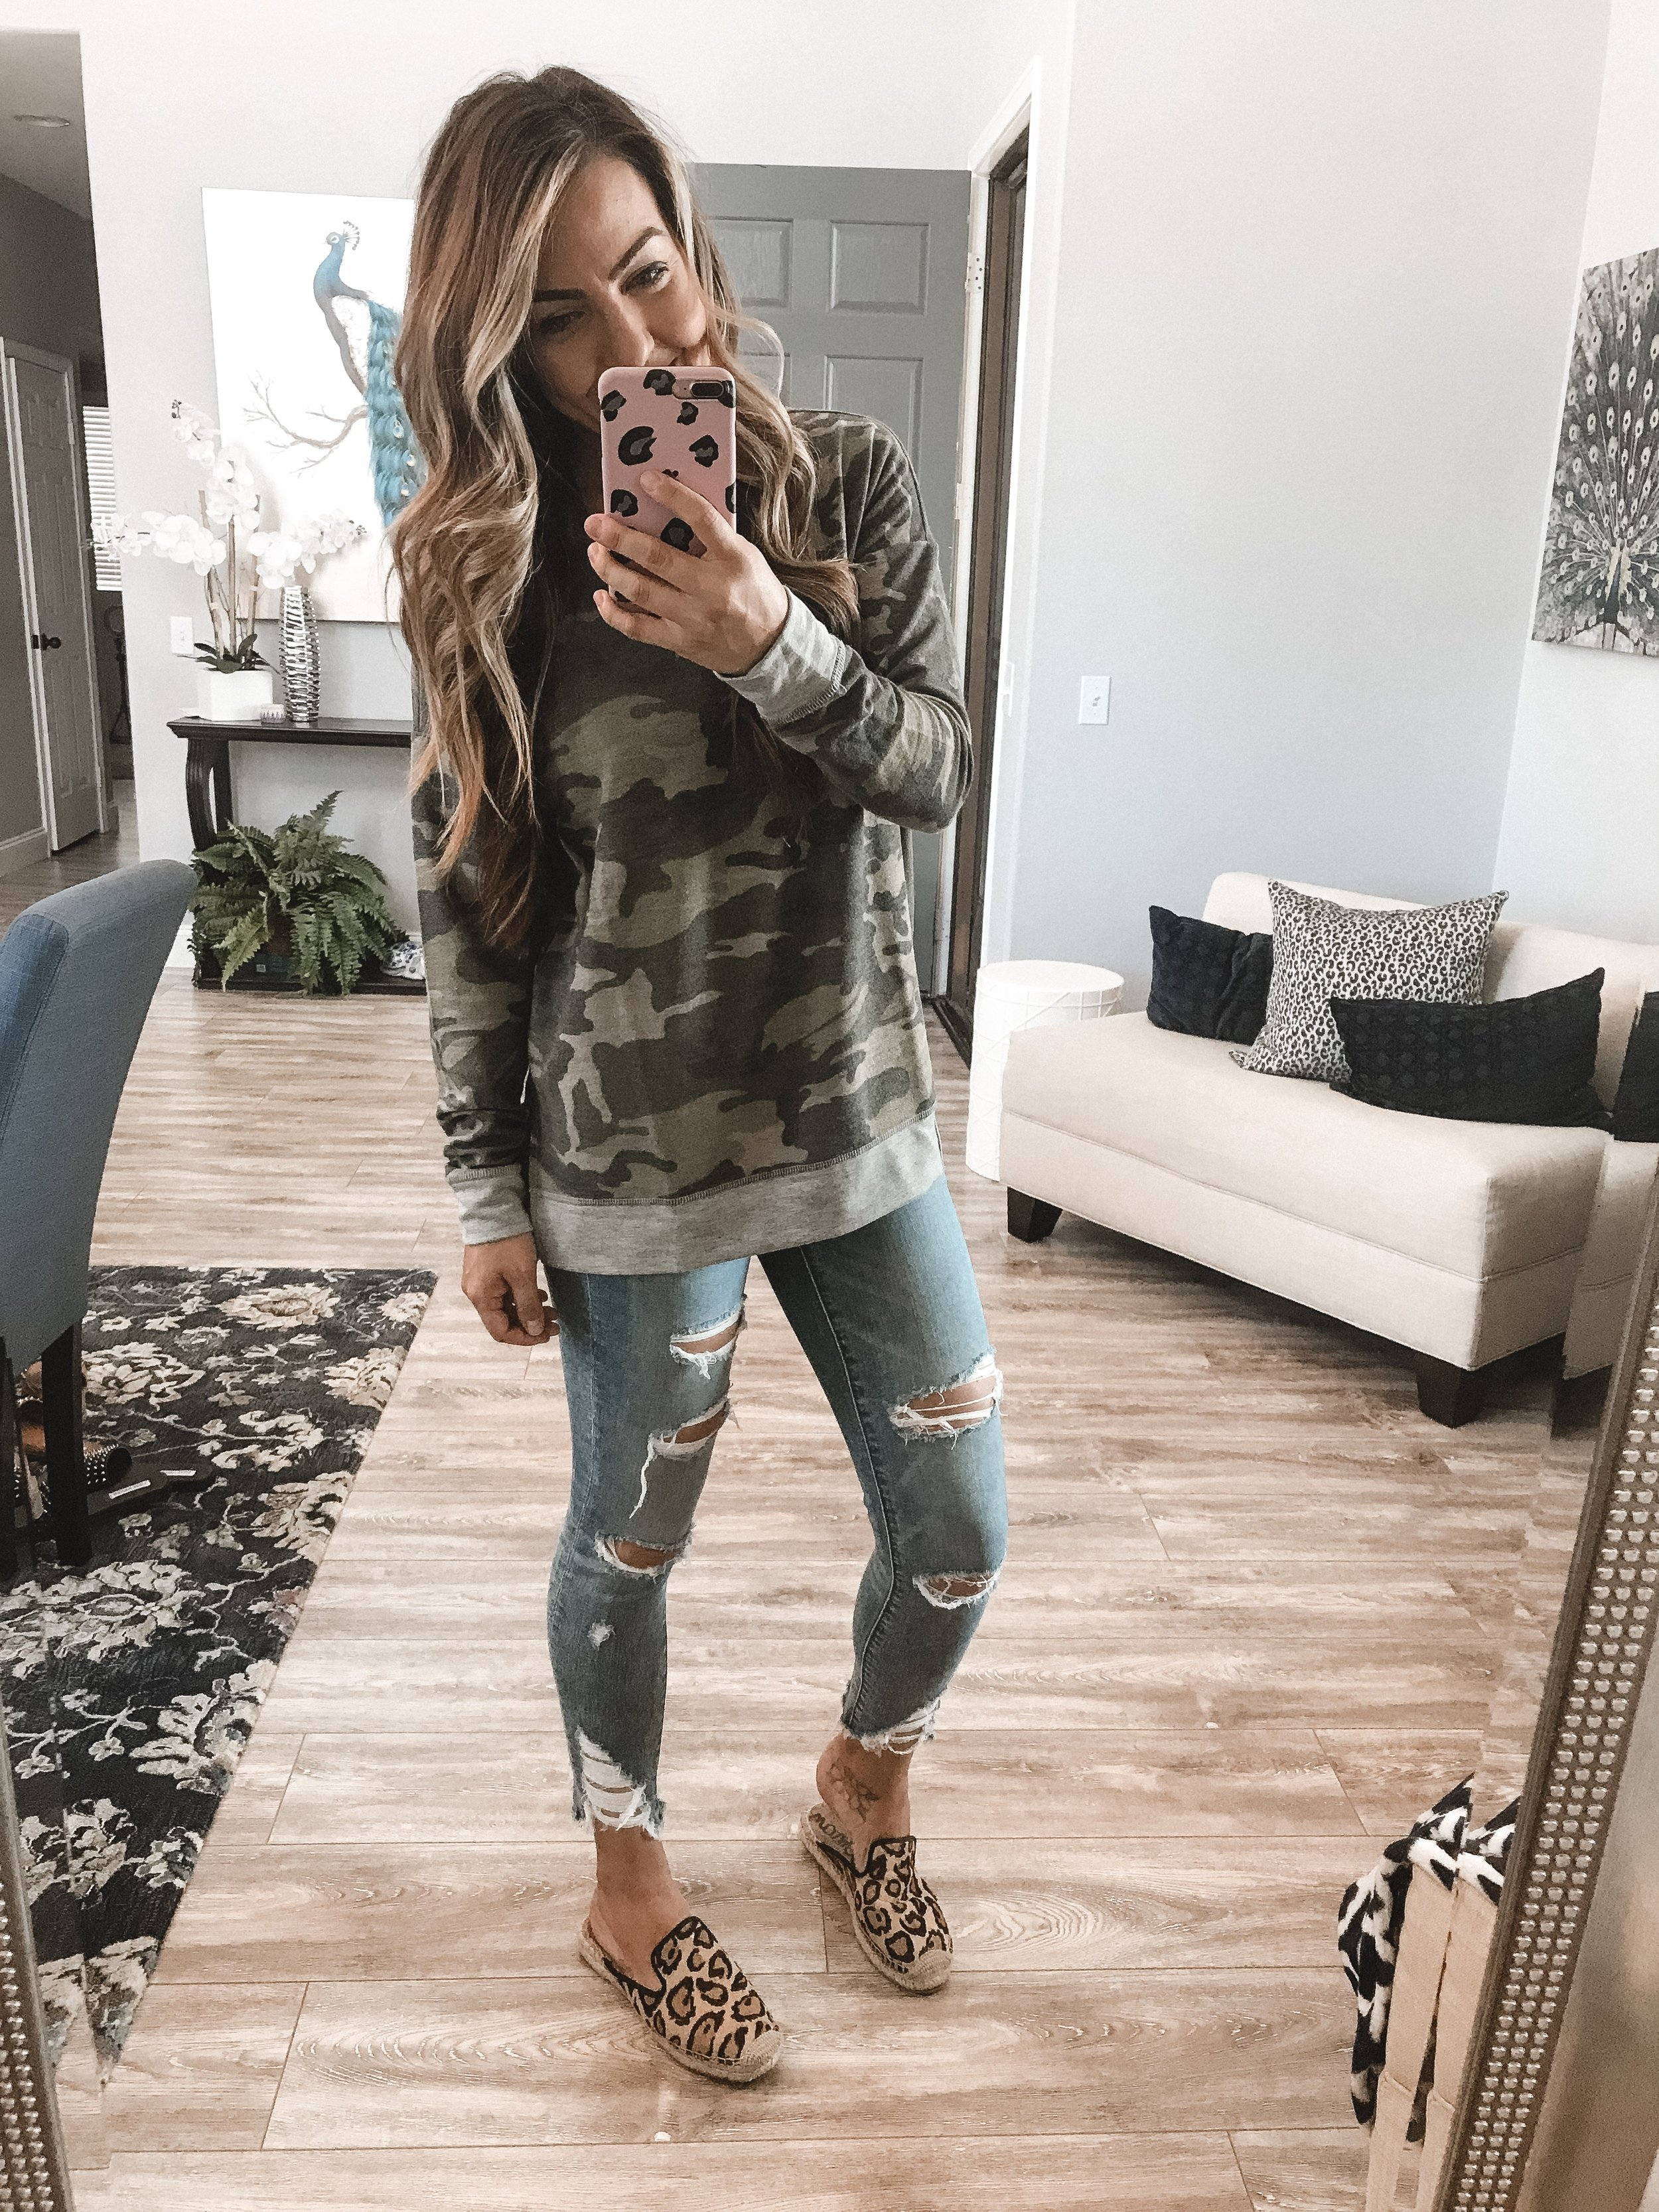 Cooler Nights Look - Perfect for a quick dinner with the family!Camo SweaterJeansShoes